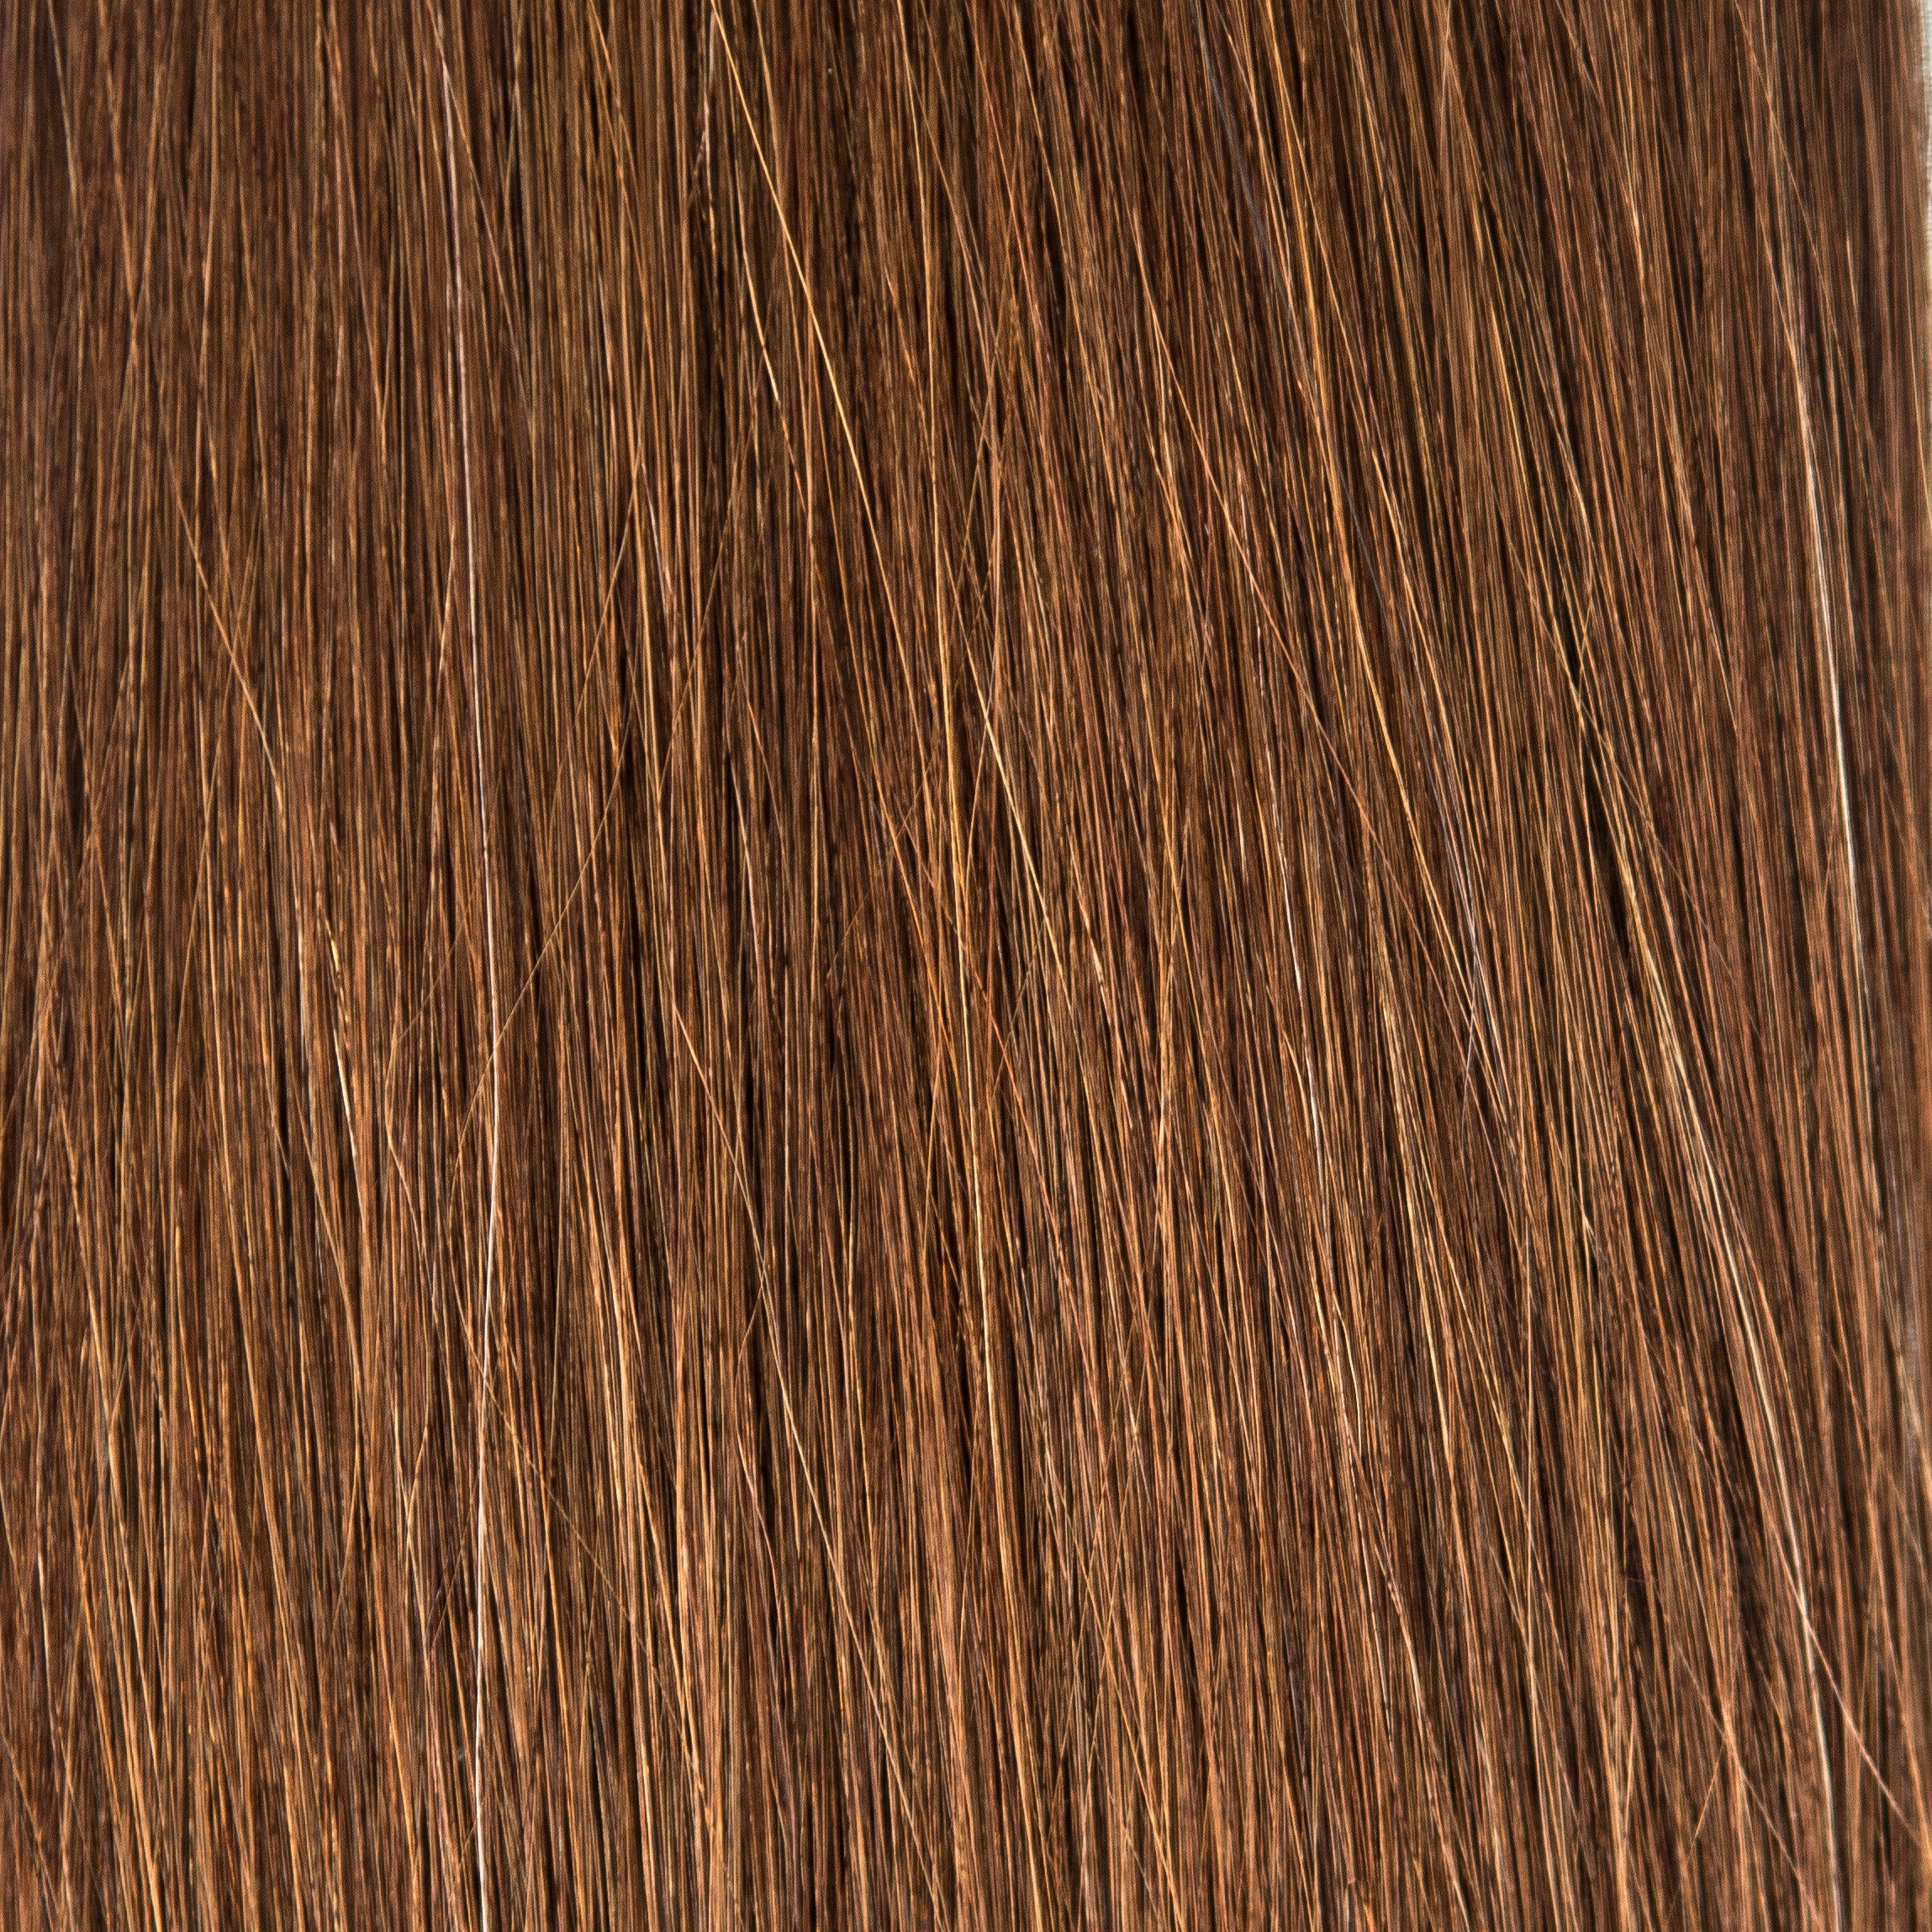 Laced Hair Keratin Bond Extensions #33 (Copper Penny)